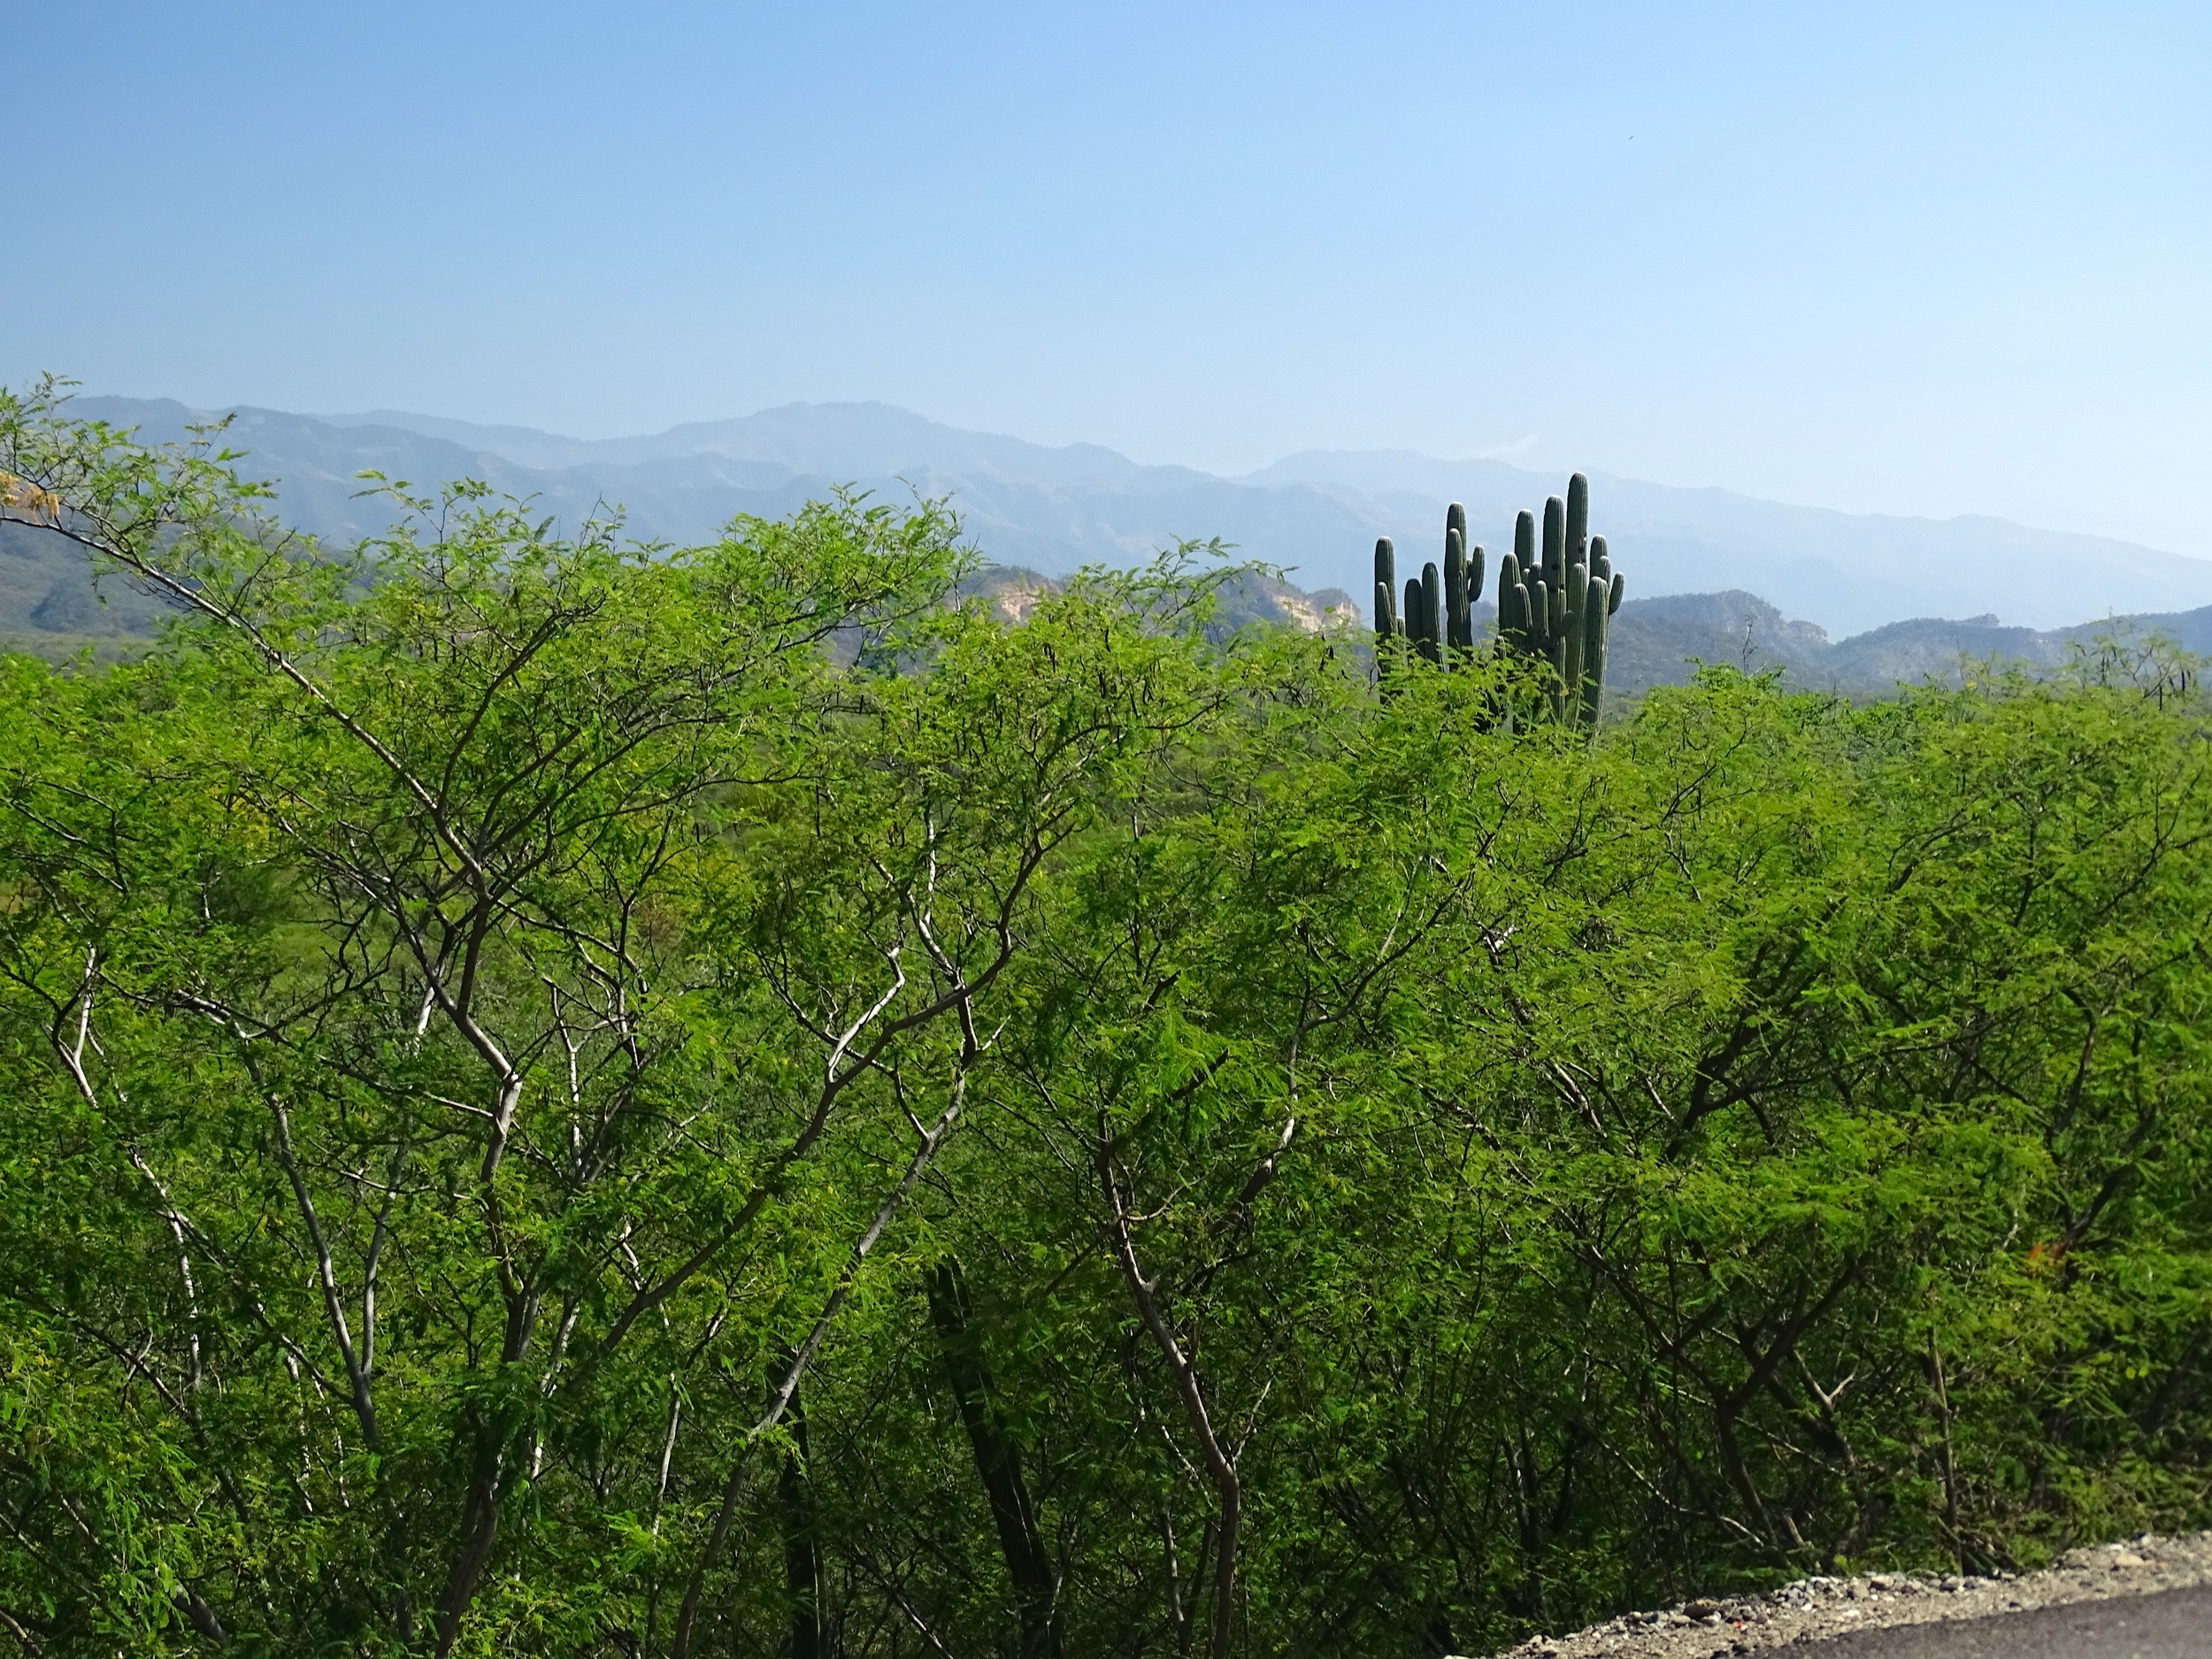 Landscape with Saguaro Cacti beginning to appear